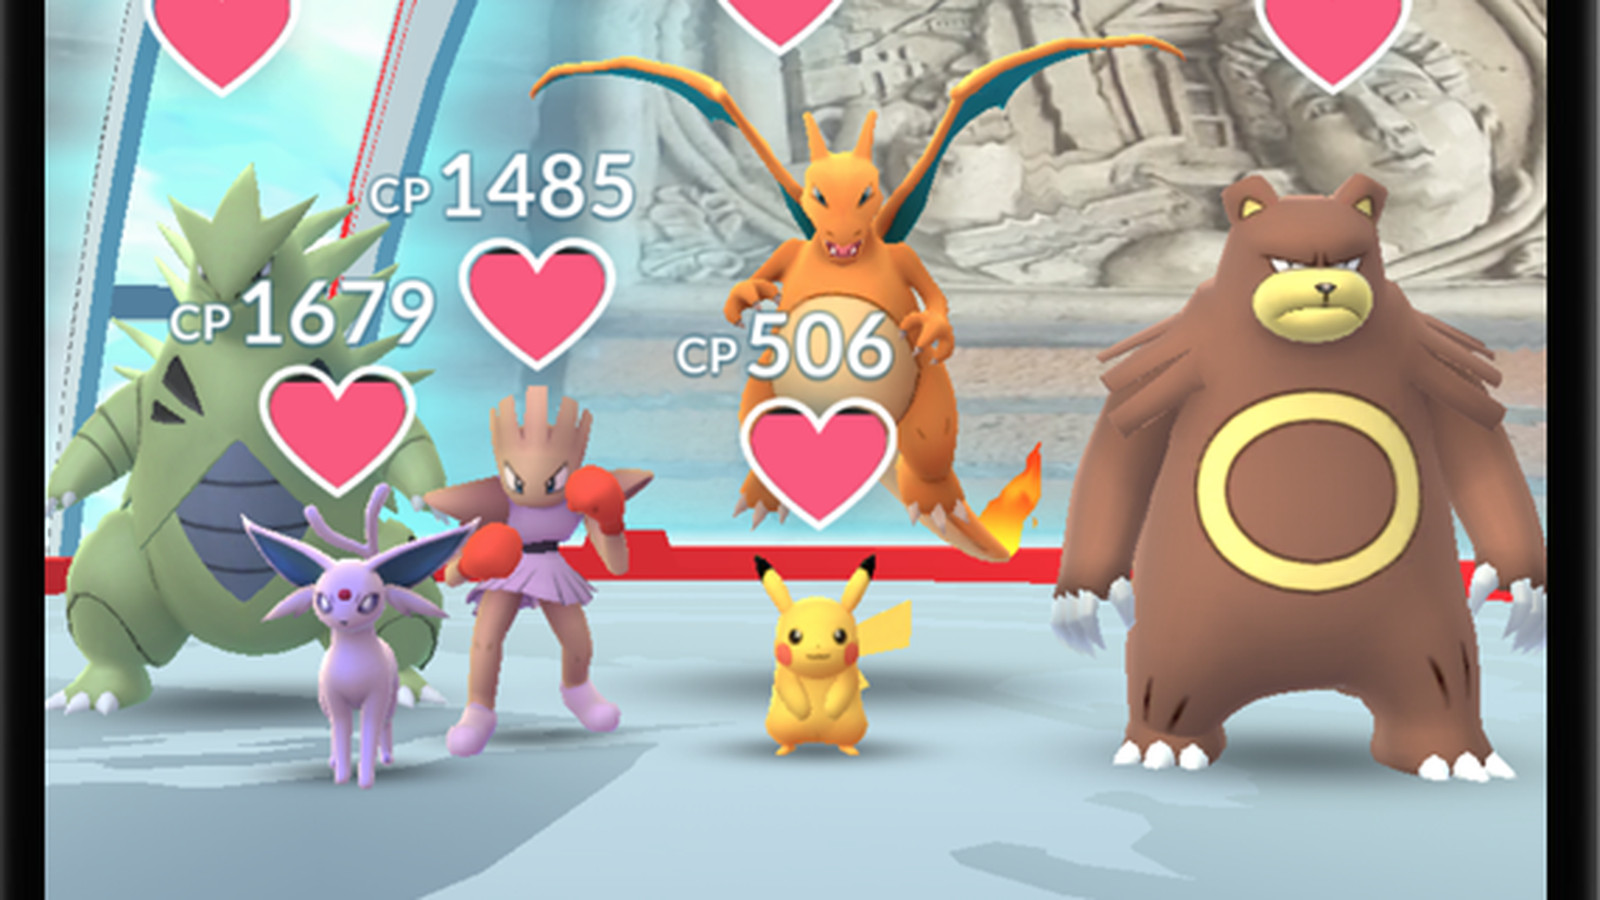 Pokémon Go's new gyms award coins faster after complaints